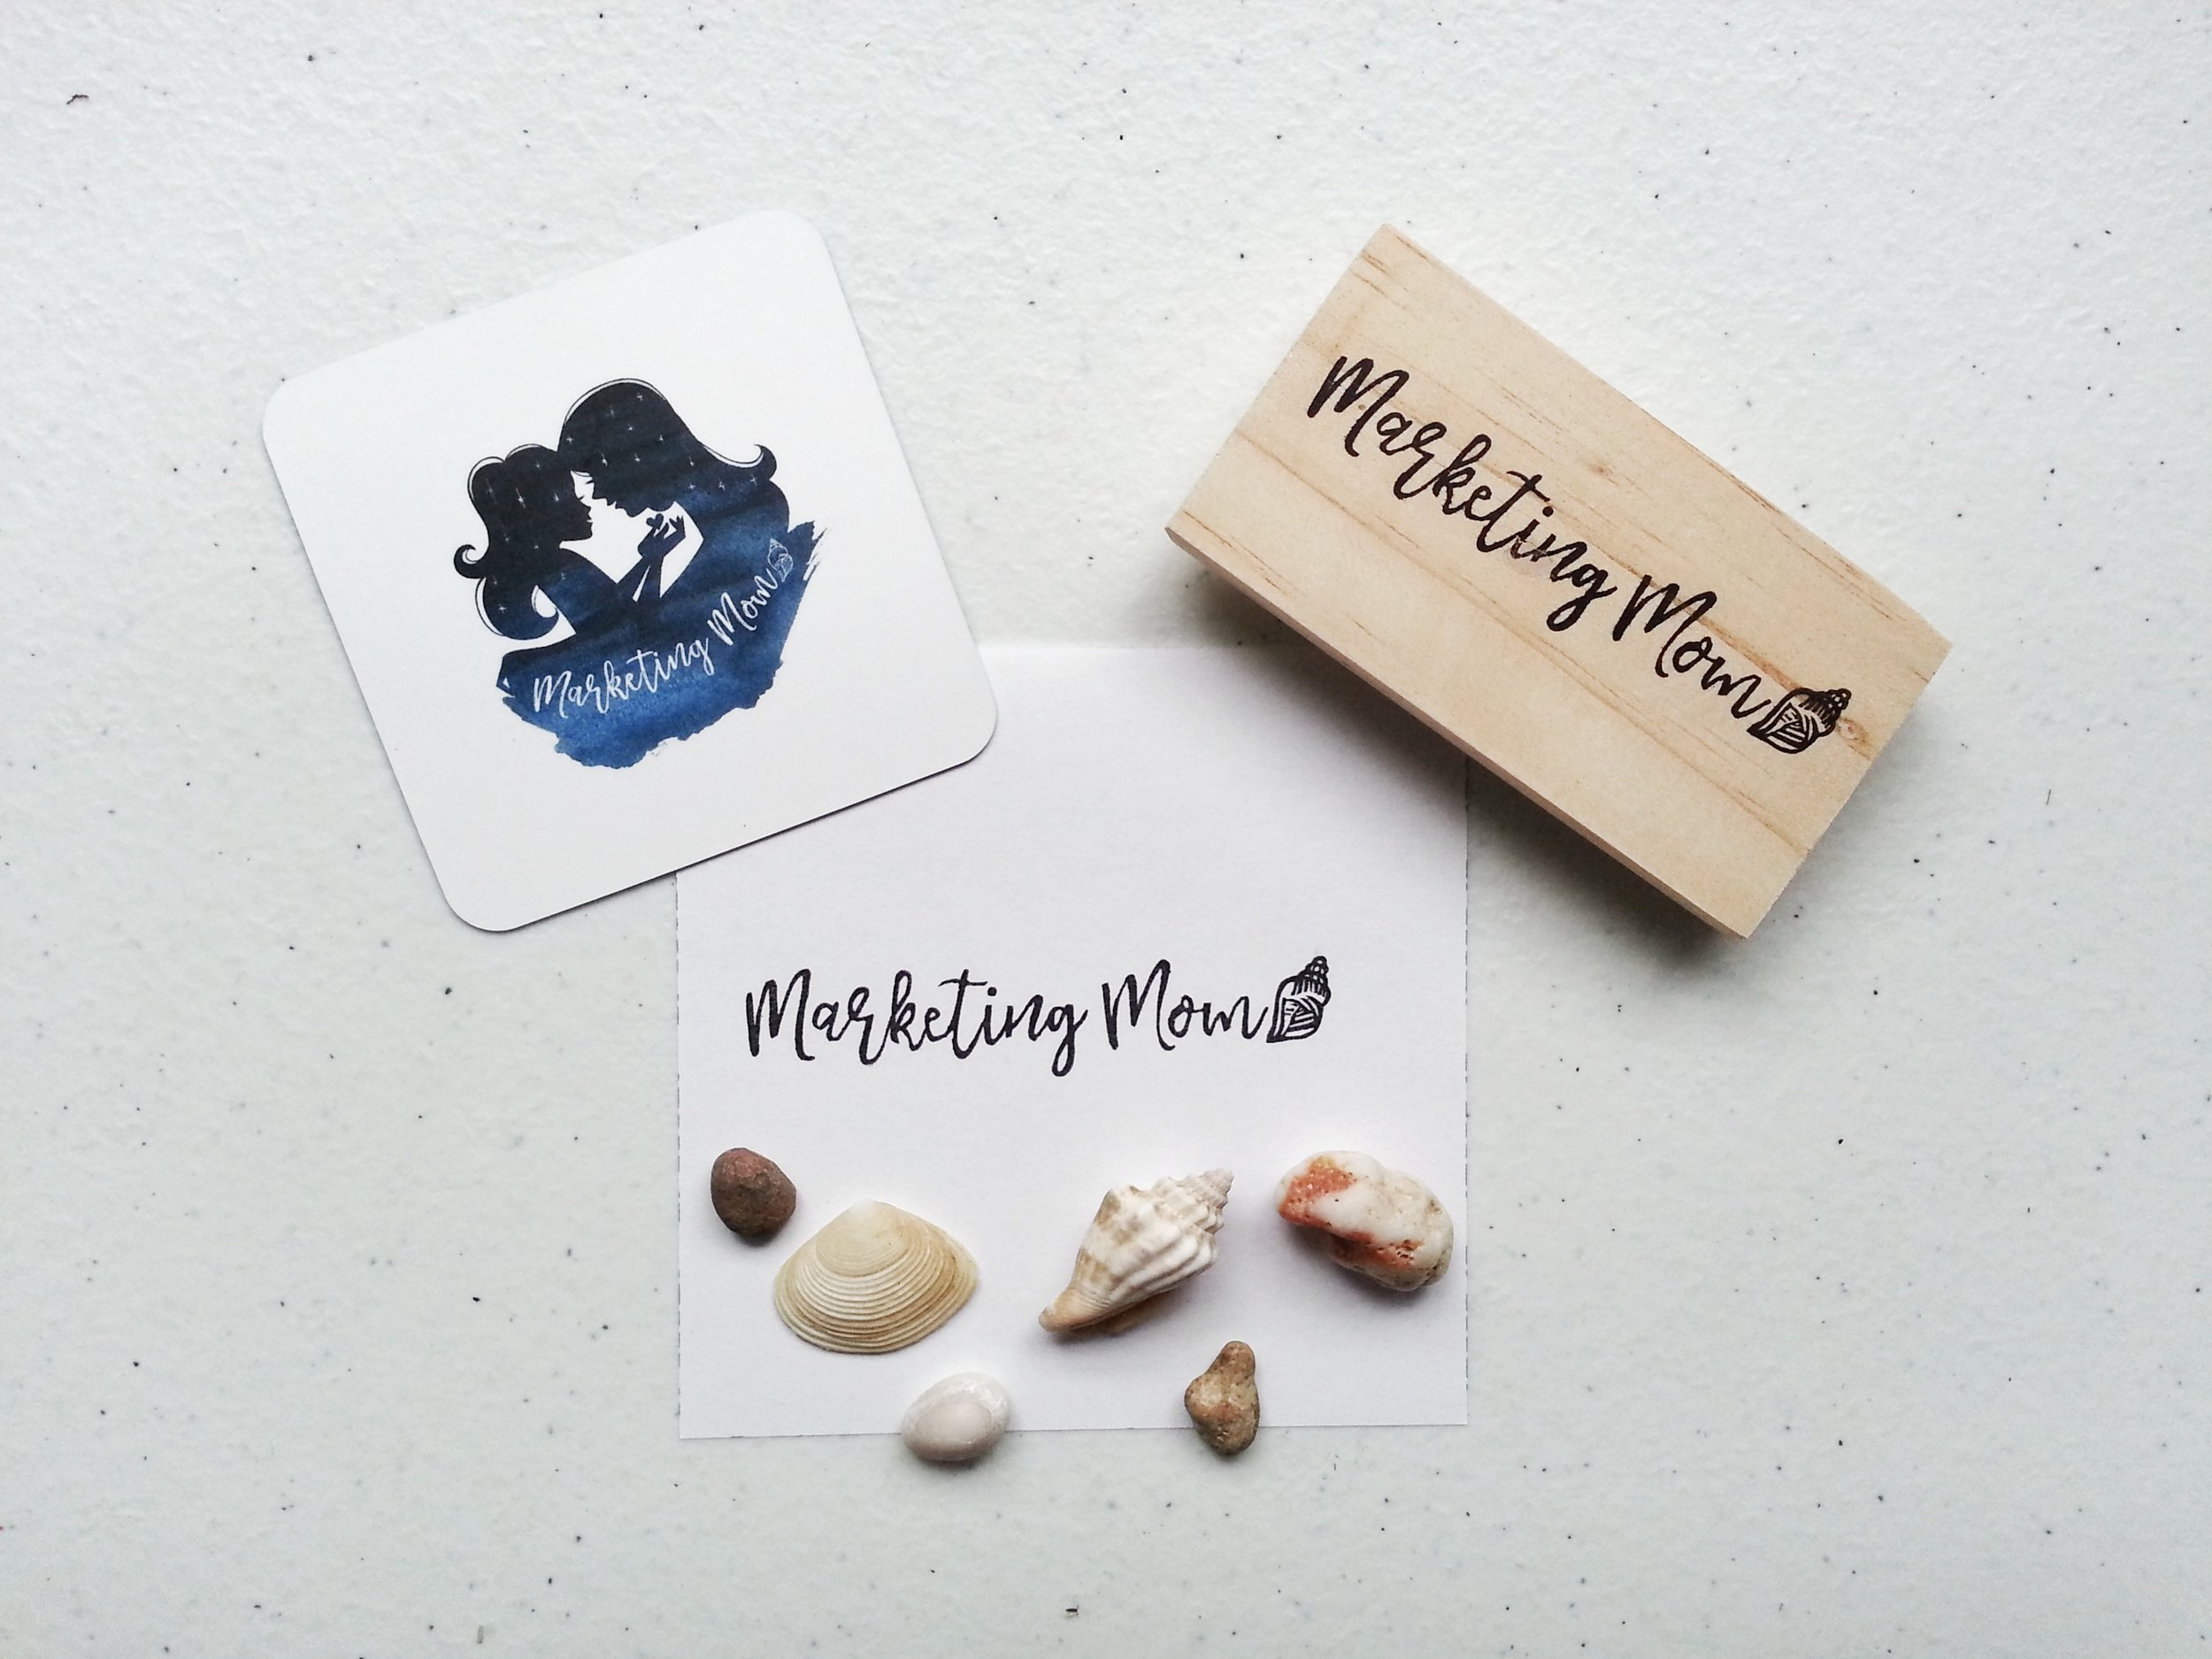 Maker-Mati-Handcarved-Stamps1.jpeg